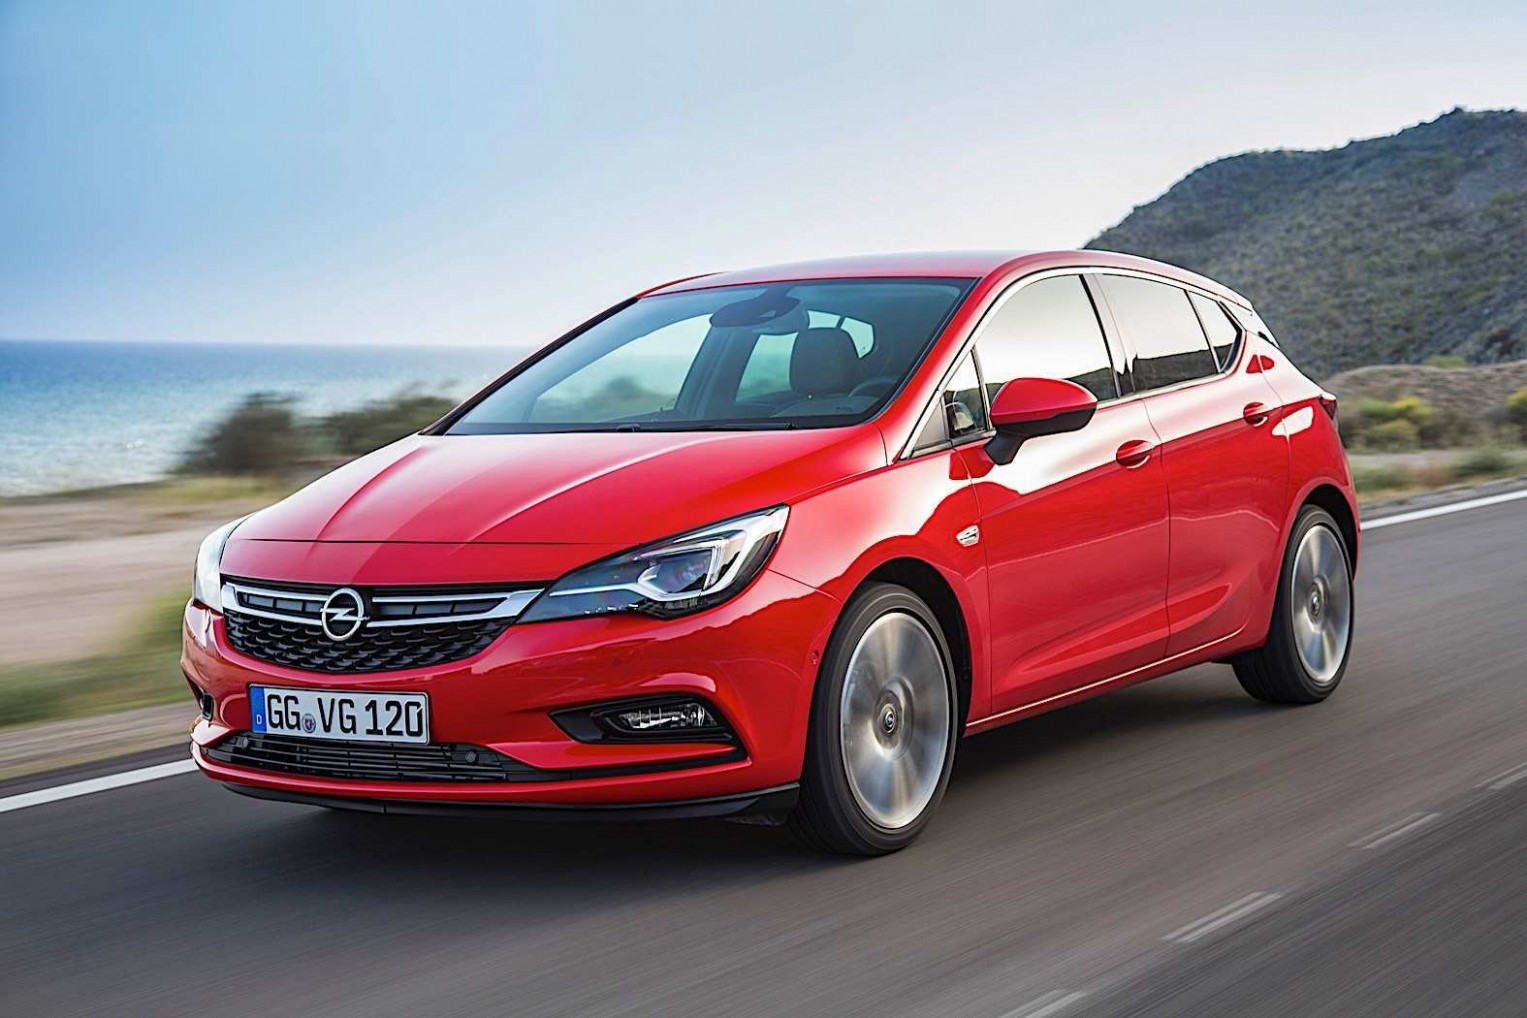 6 New Opel Astra K 6 Price for Opel Astra K 6 - Car Review ...